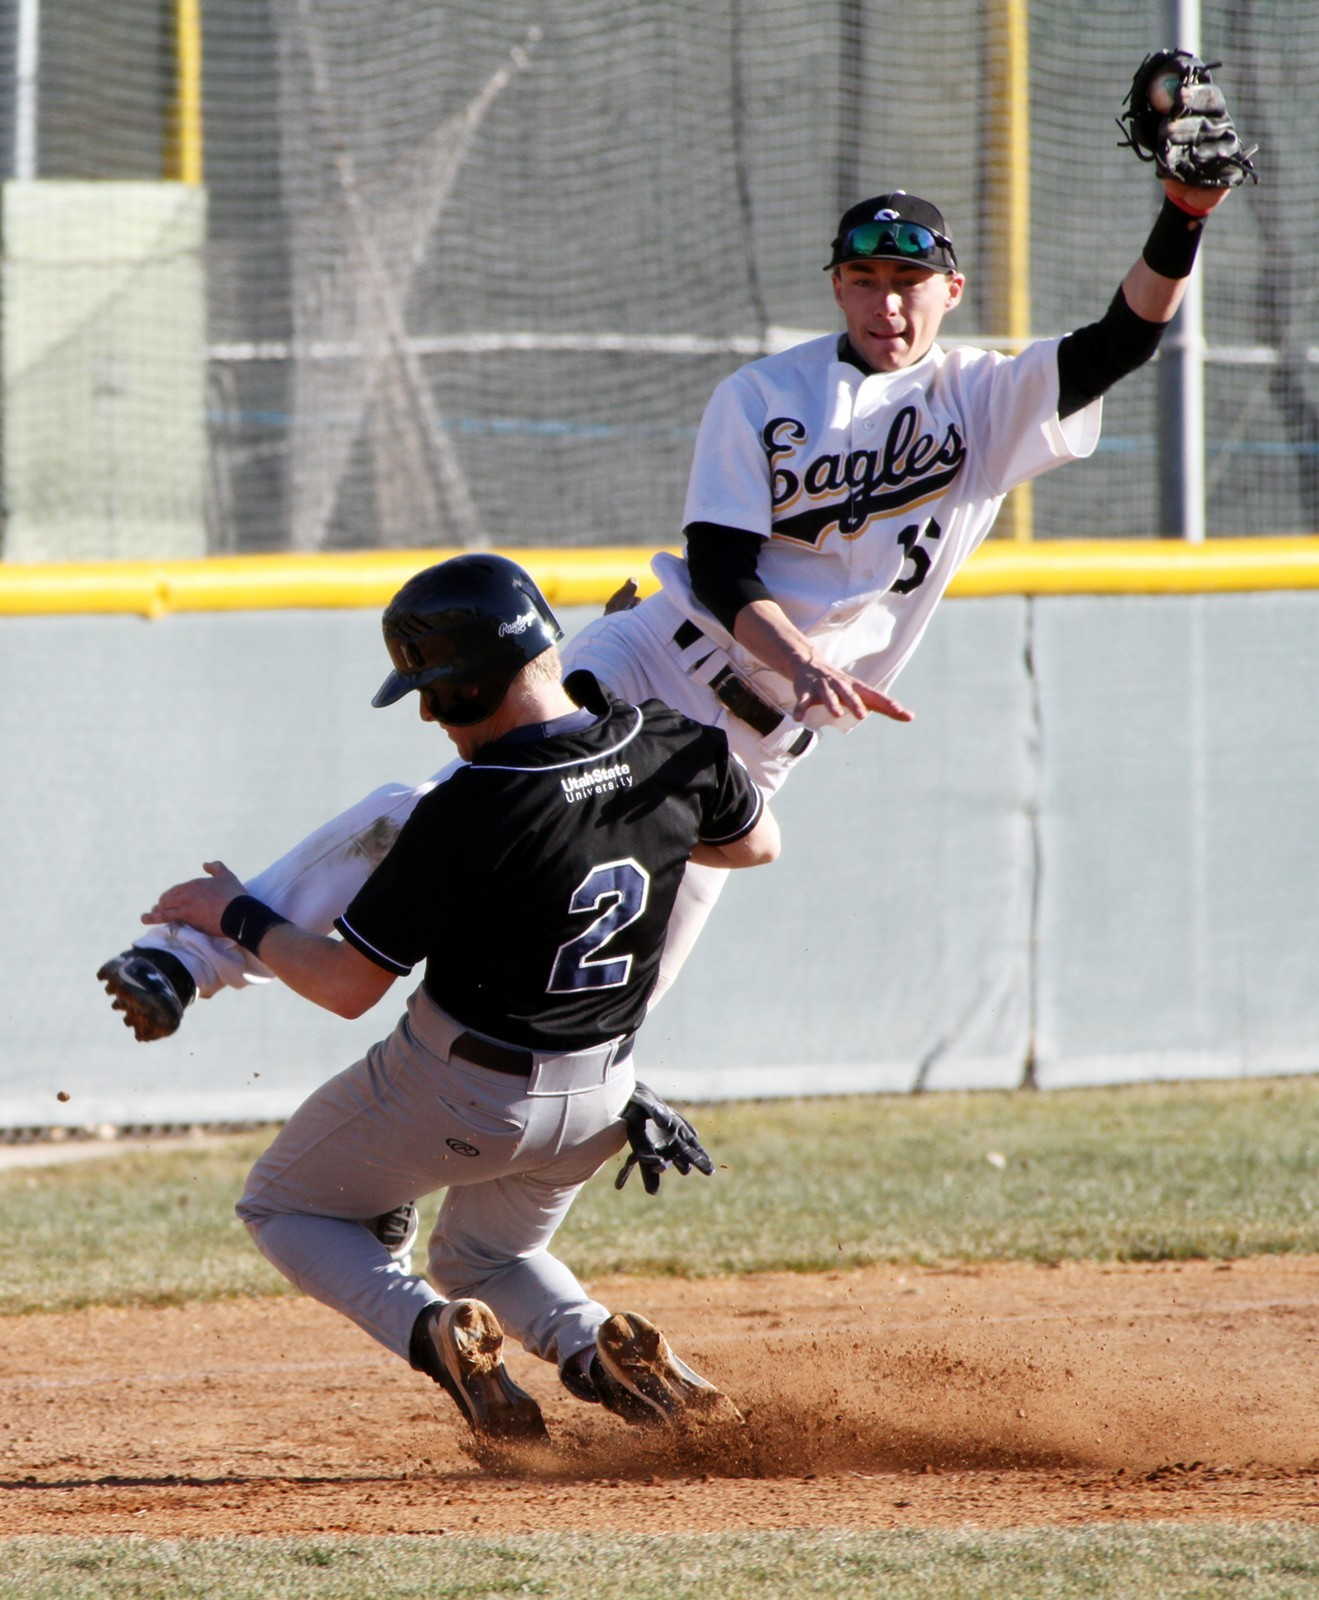 Golden Eagle Pitching Shines For Baseball Team College